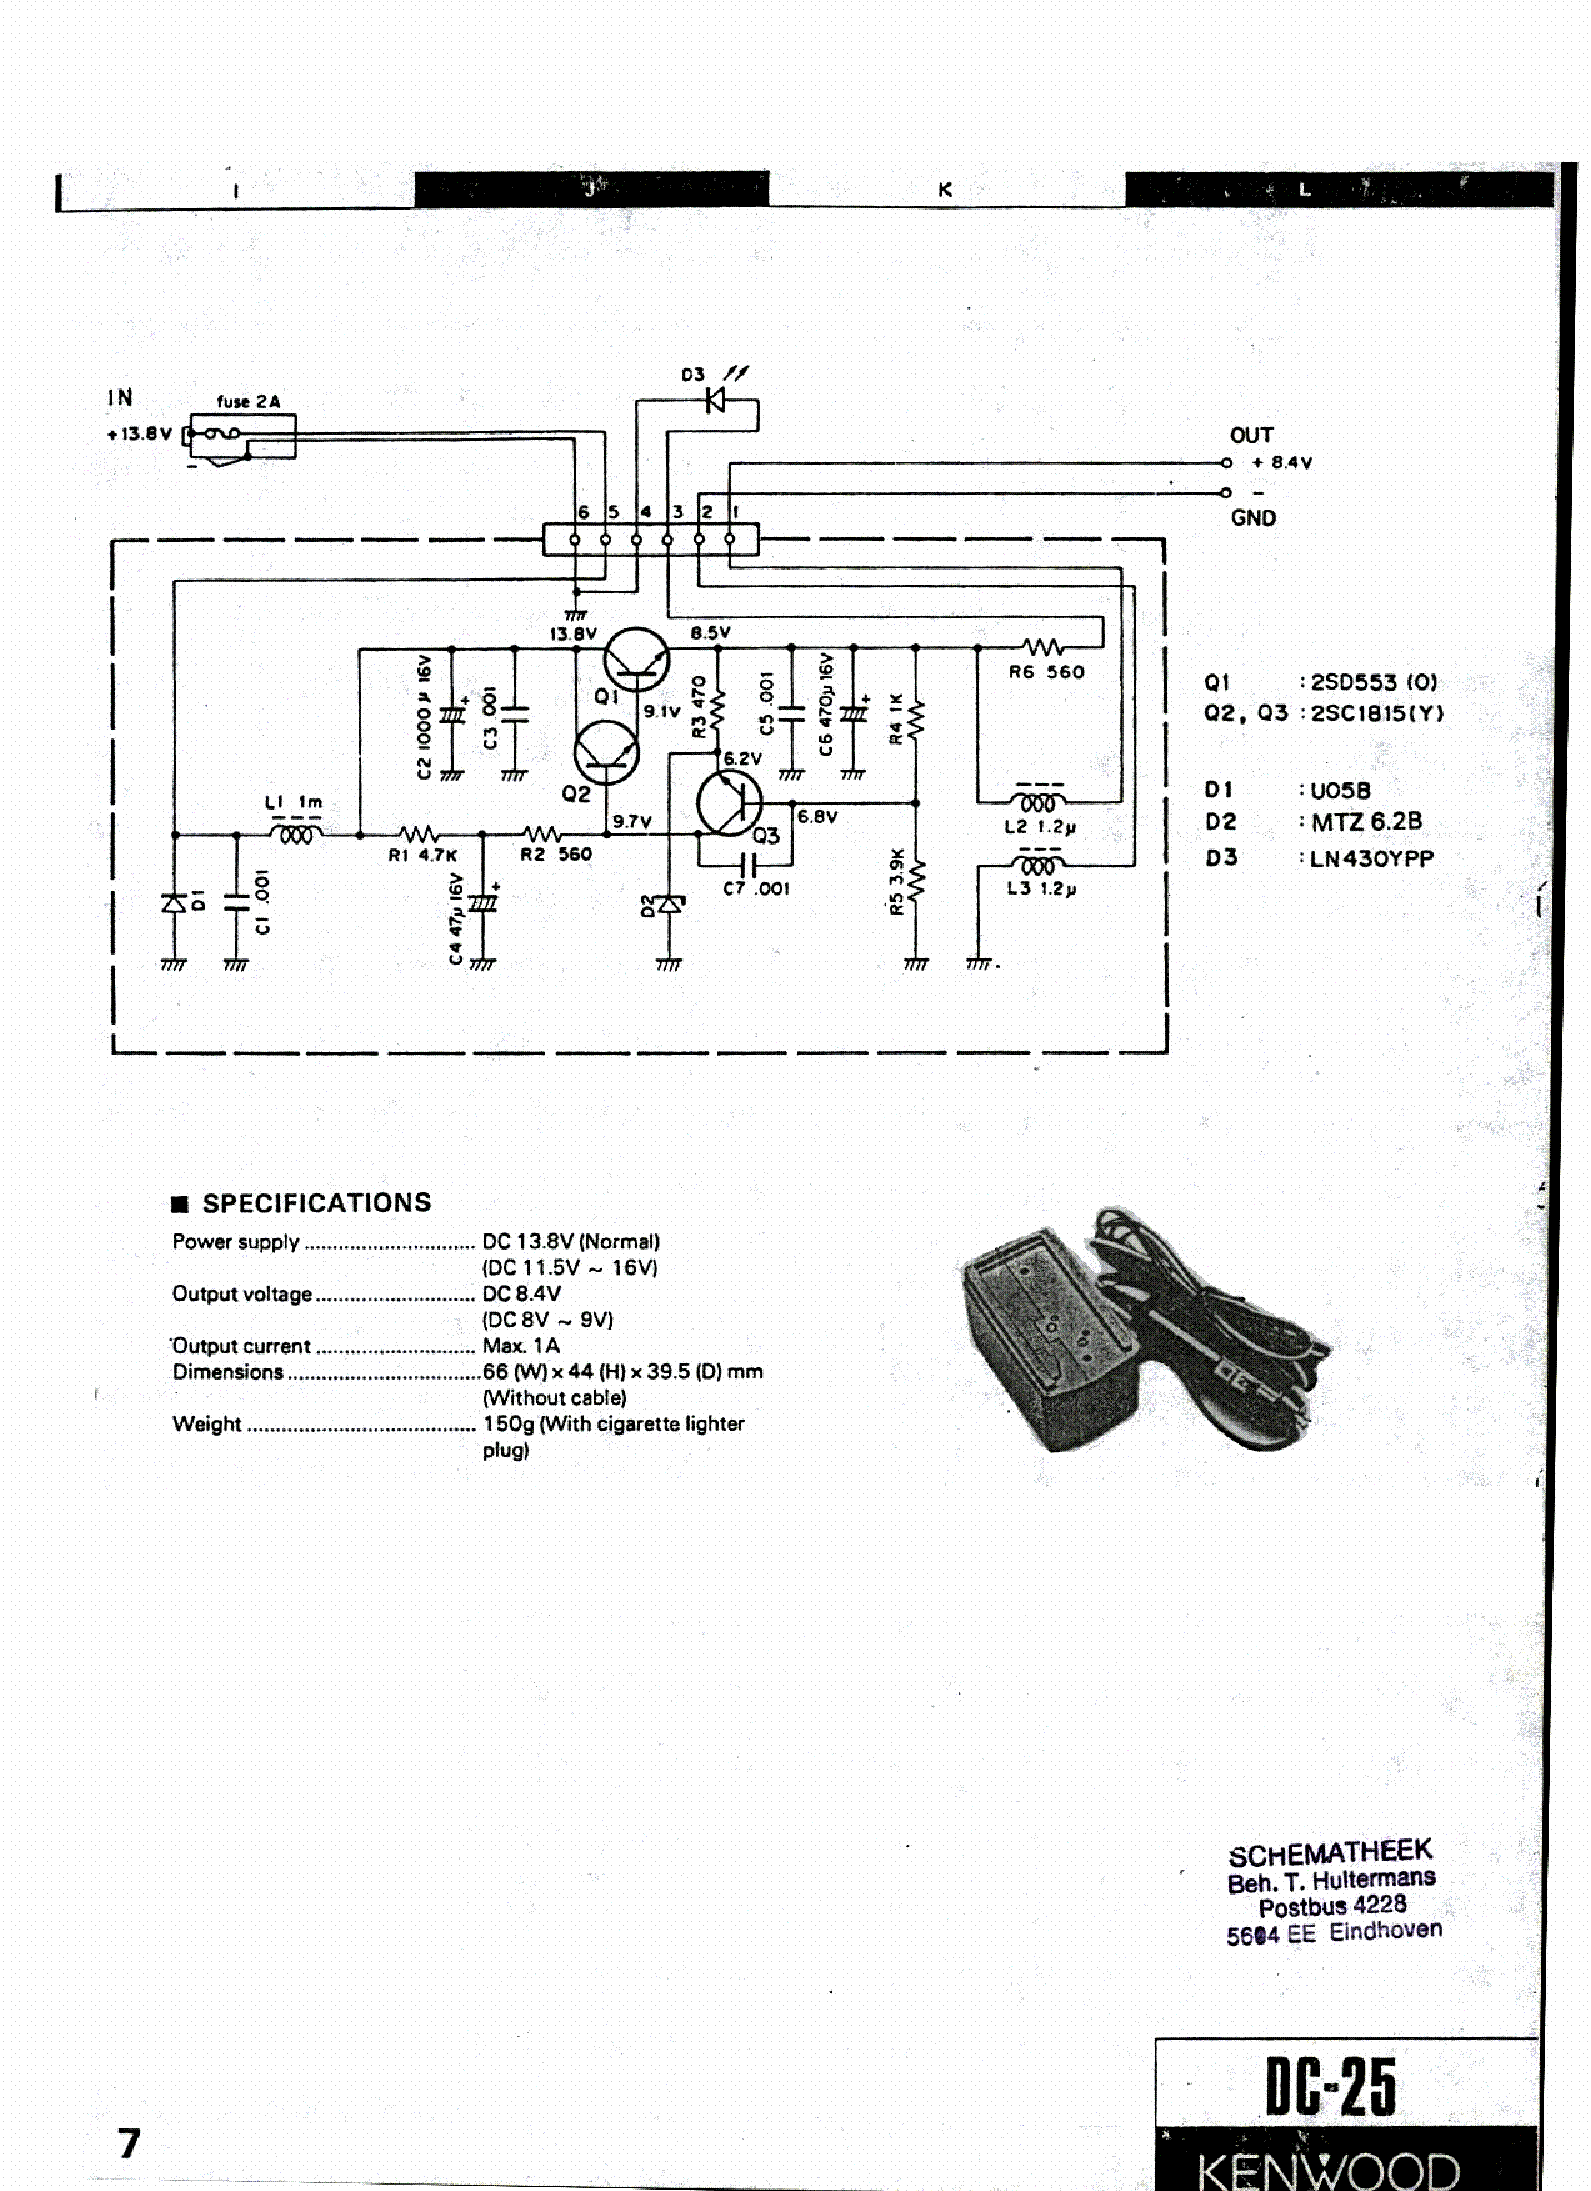 KENWOOD DC-25 POWER-SUPPLY SCH Service Manual download